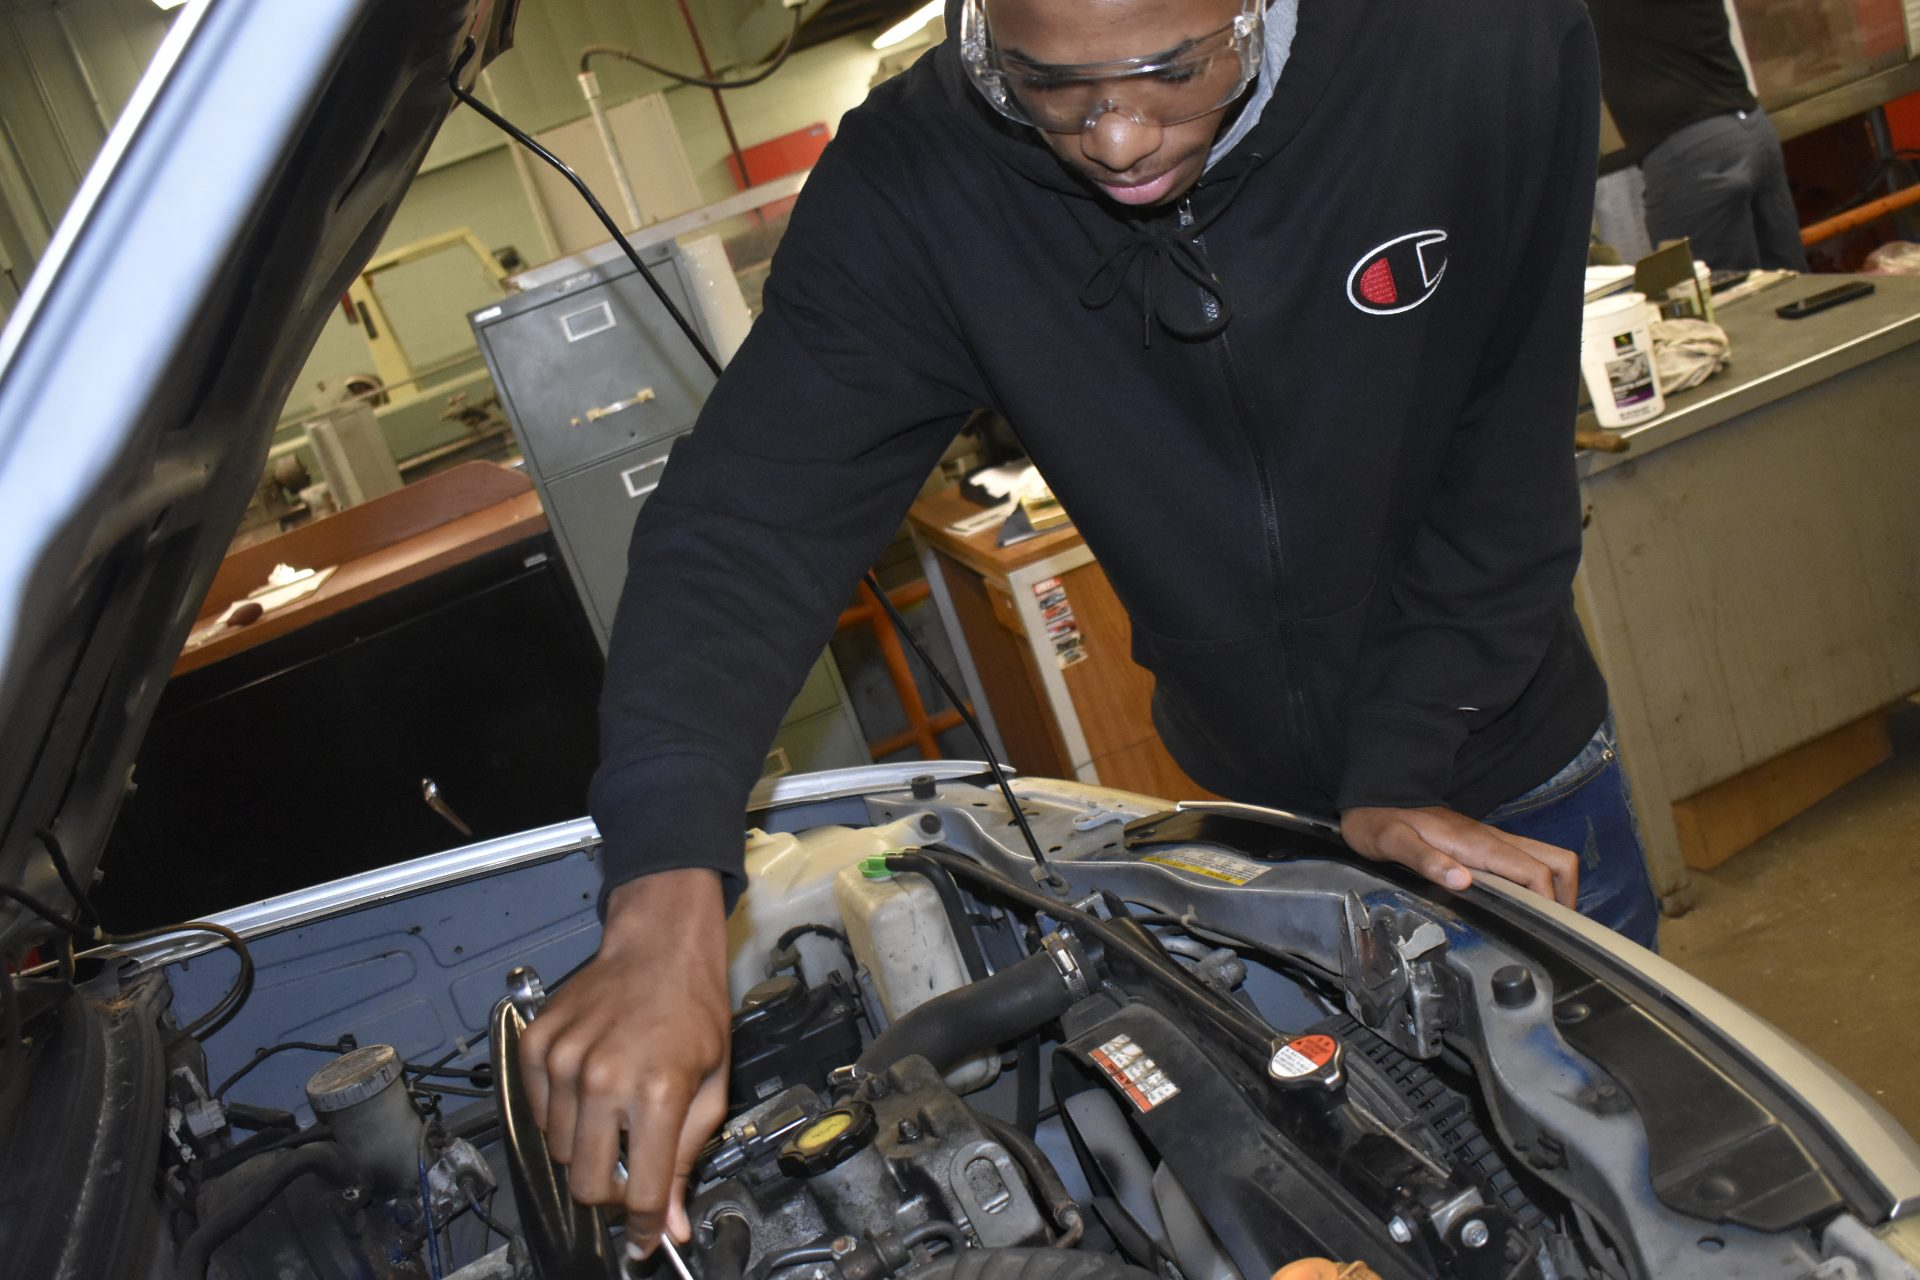 Auto 1 student working on car